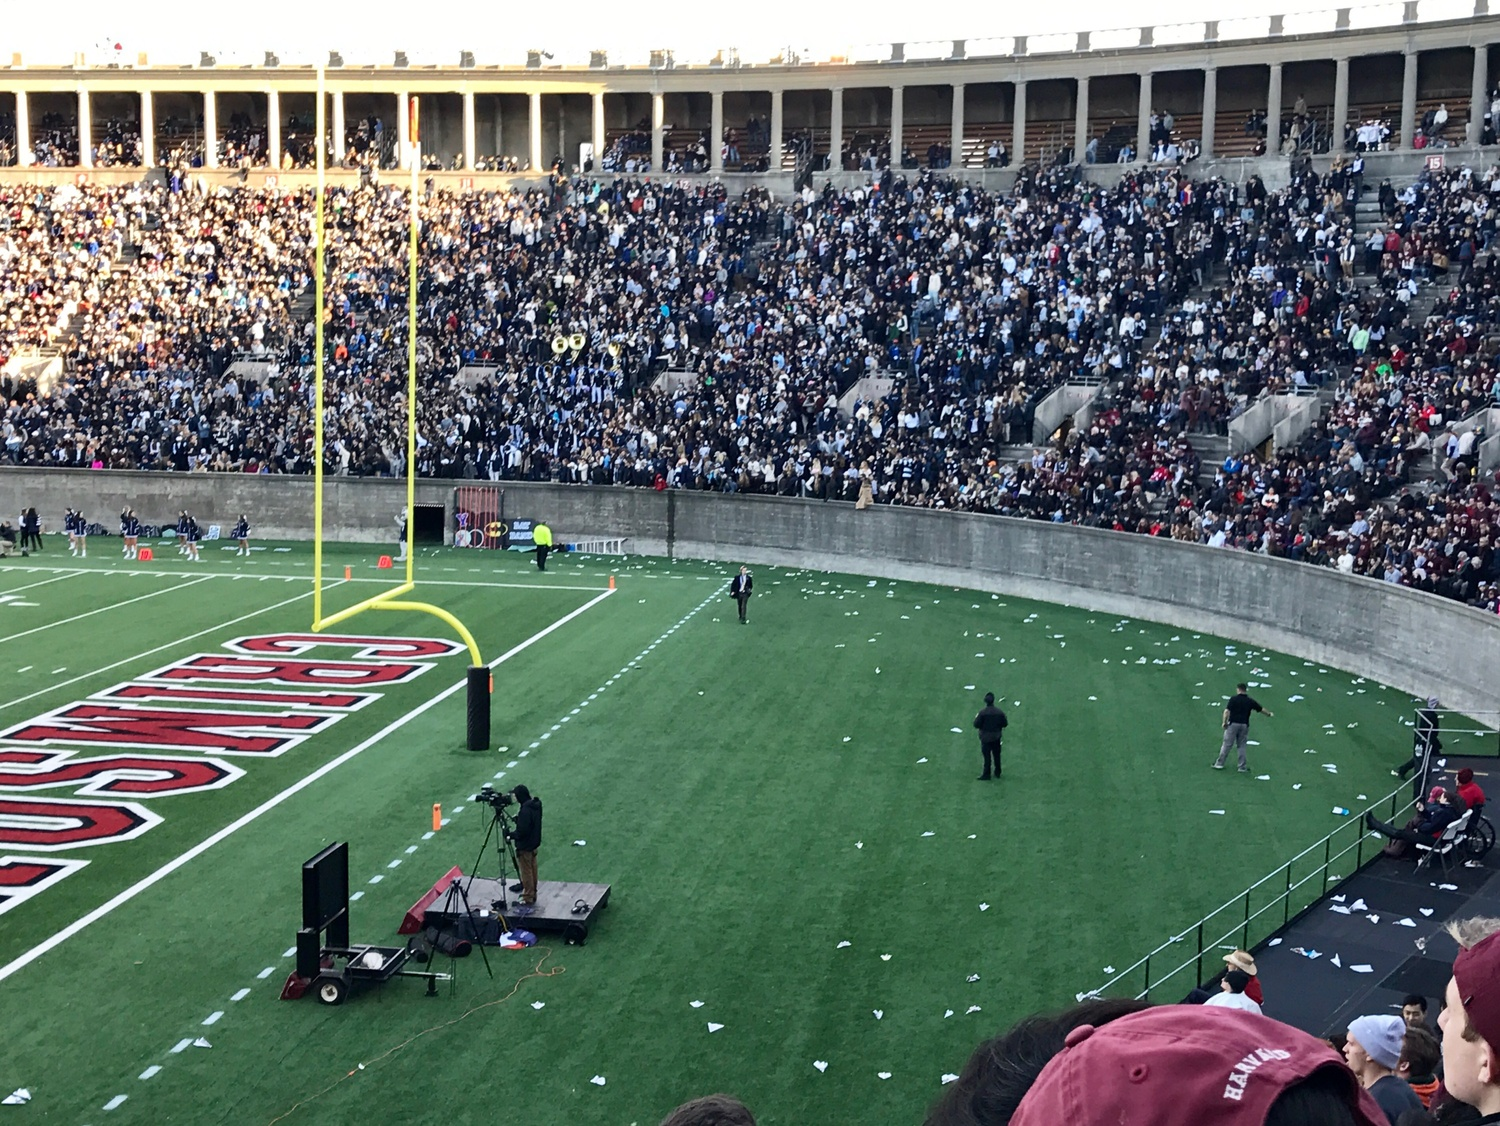 Paper planes littered the field during the Harvard-Yale game Saturday